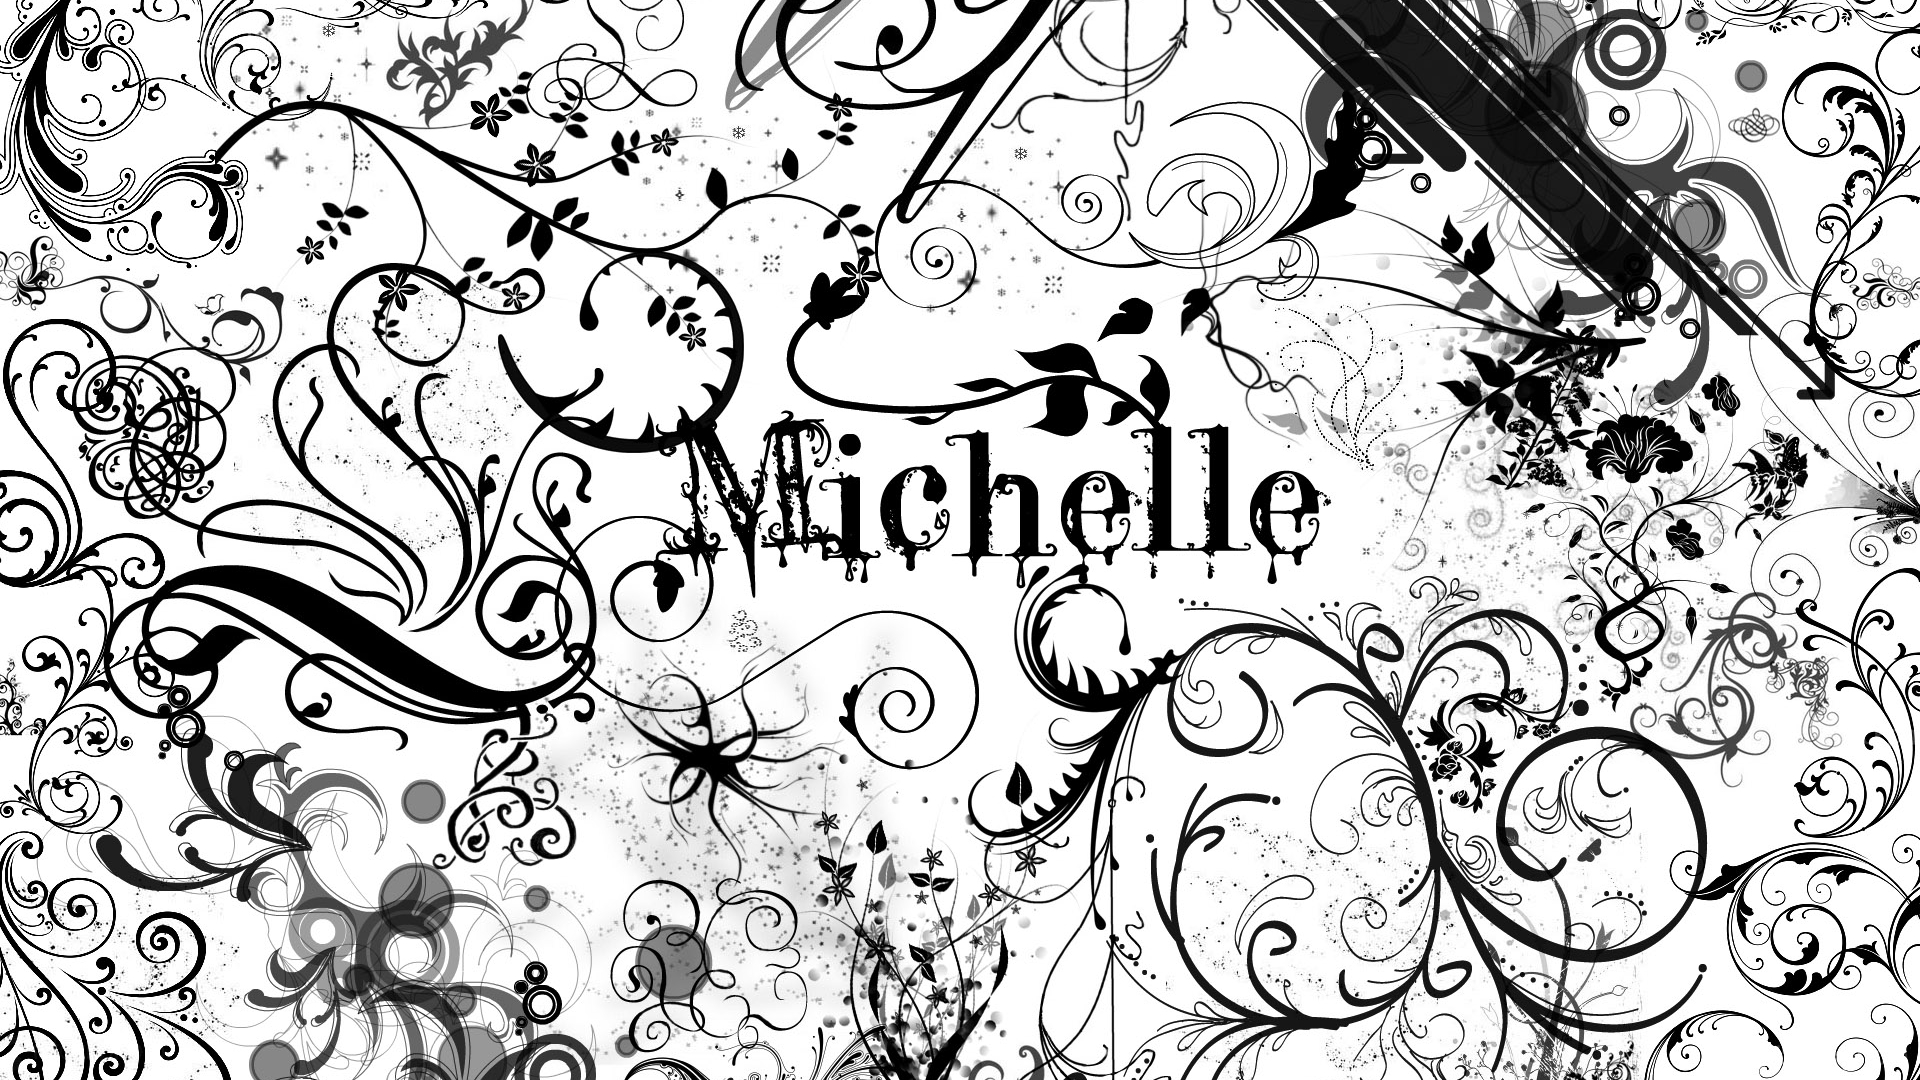 download Michelle Name Wallpaper Images Pictures Becuo 1920x1080